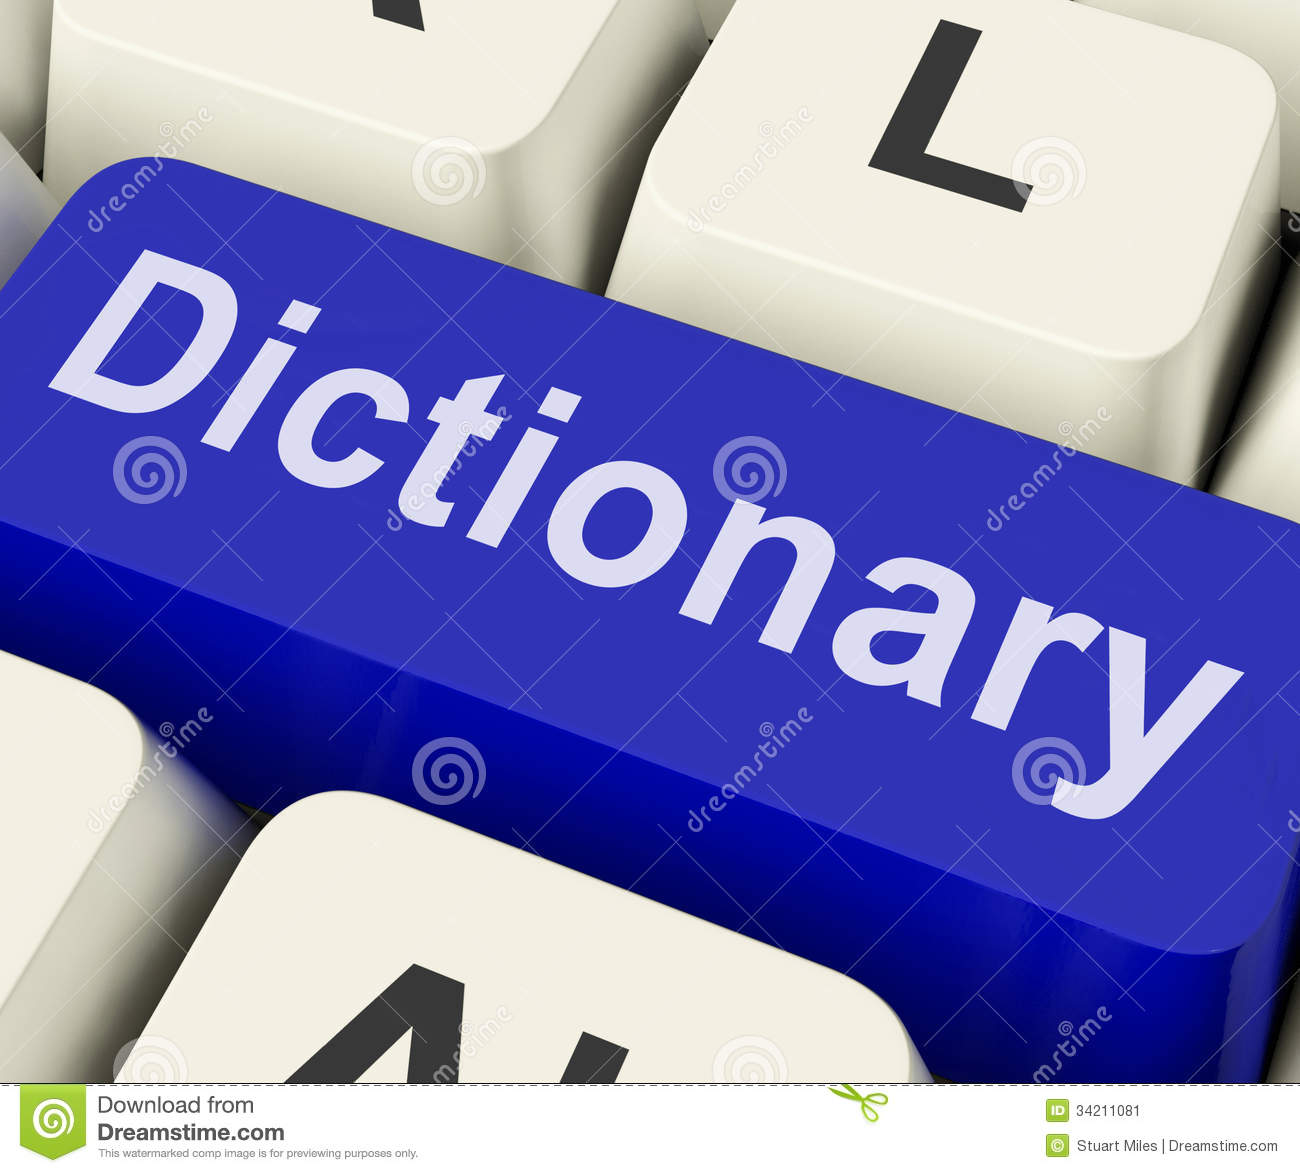 one of the cambridge dictionaries online and one of the most